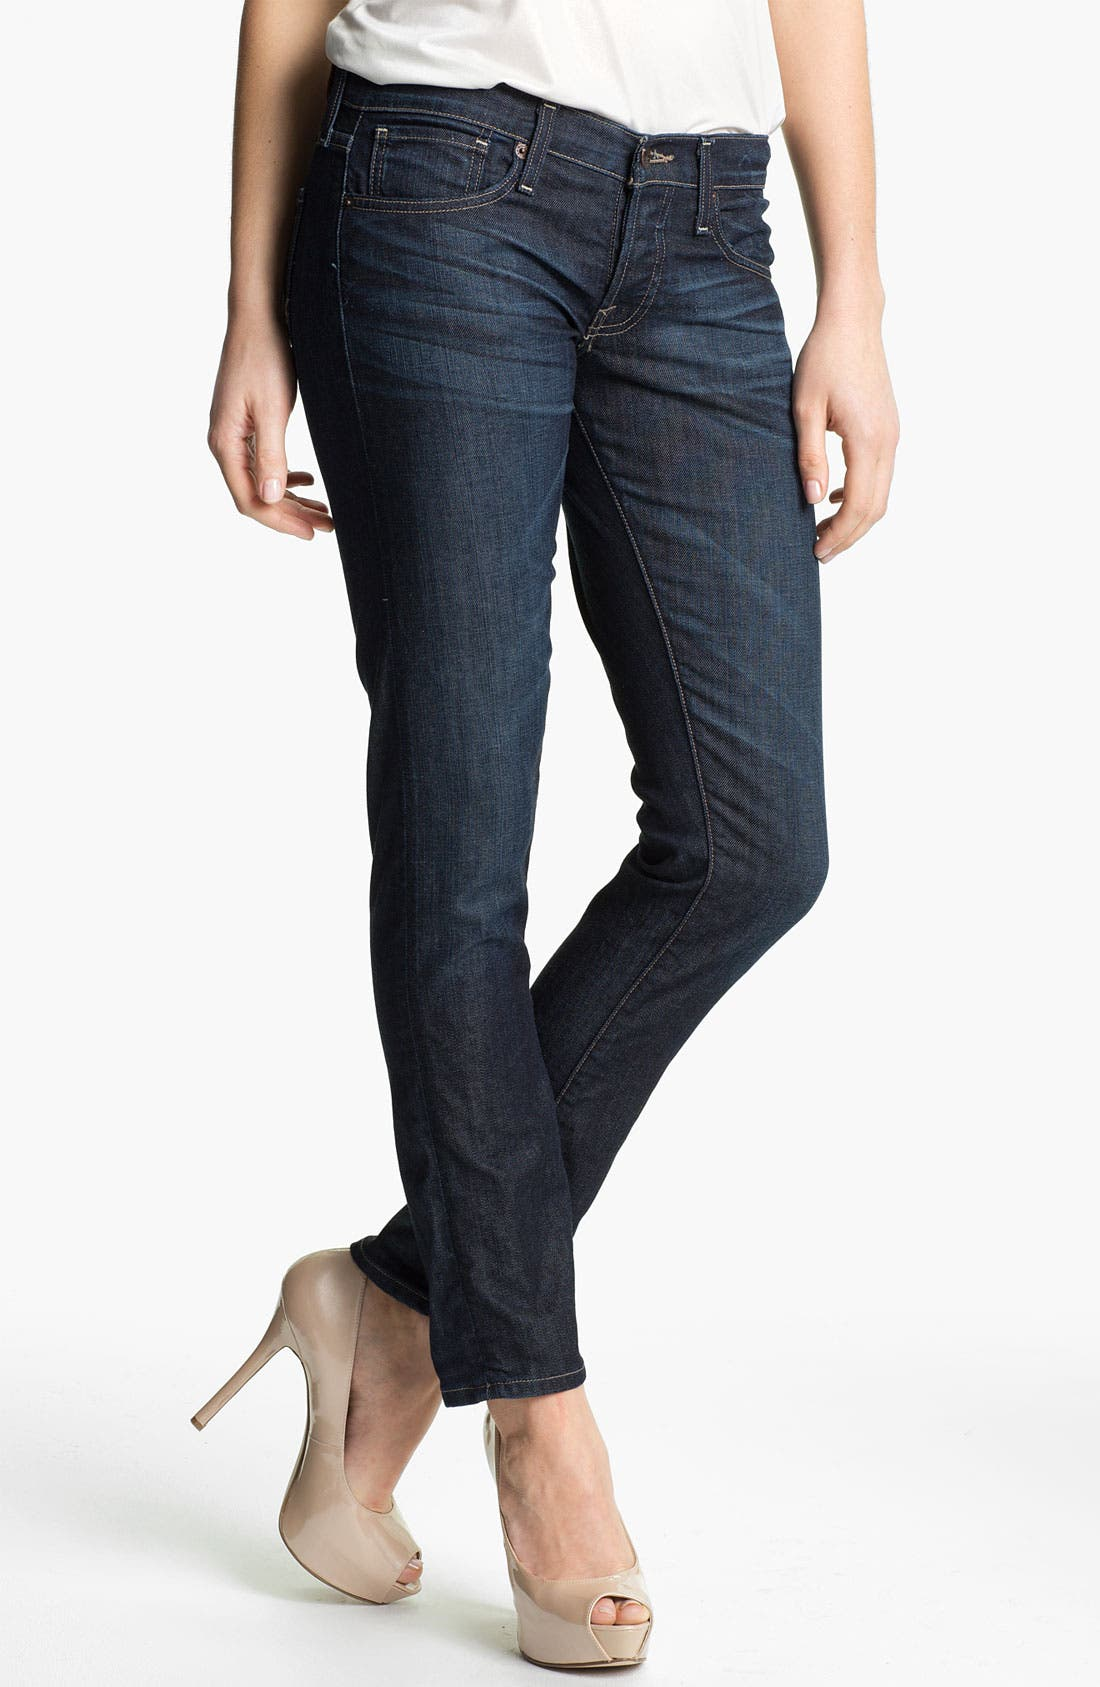 Alternate Image 1 Selected - Lucky Brand 'Sienna' Cigarette Jeans (Dark Paley) (Online Exclusive)